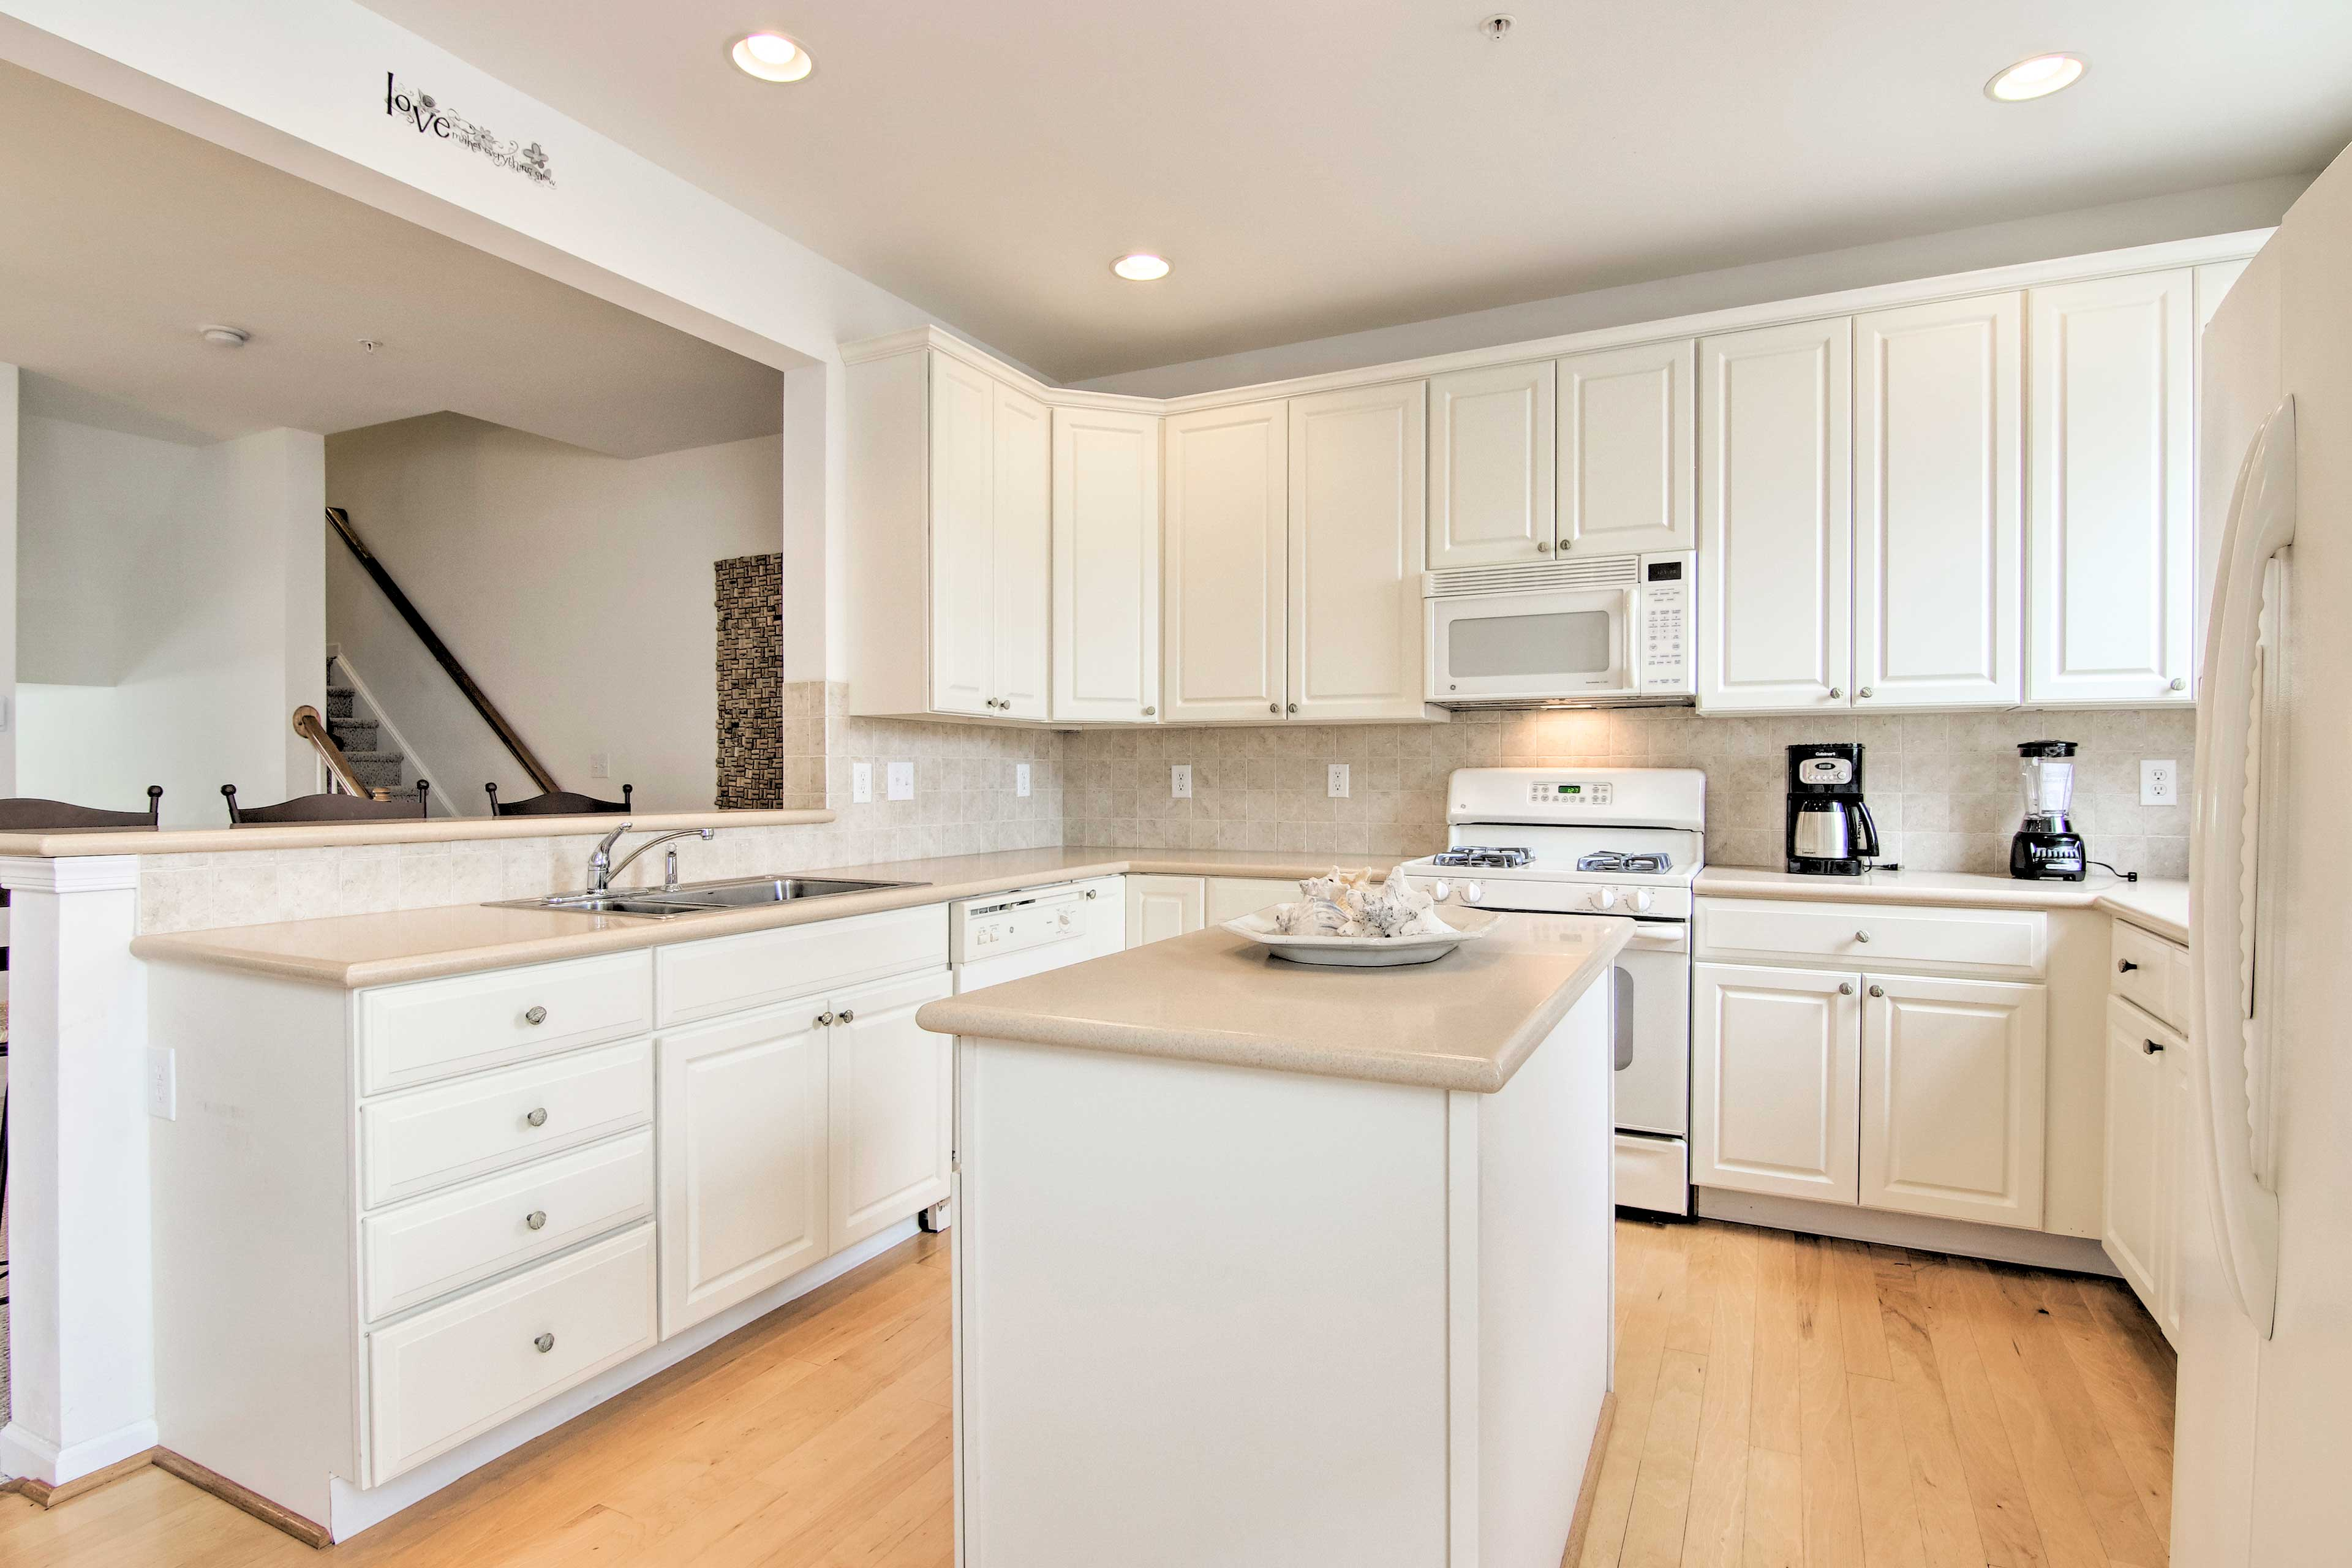 Easily prepare homemade meals with the ample counter space & modern appliances.